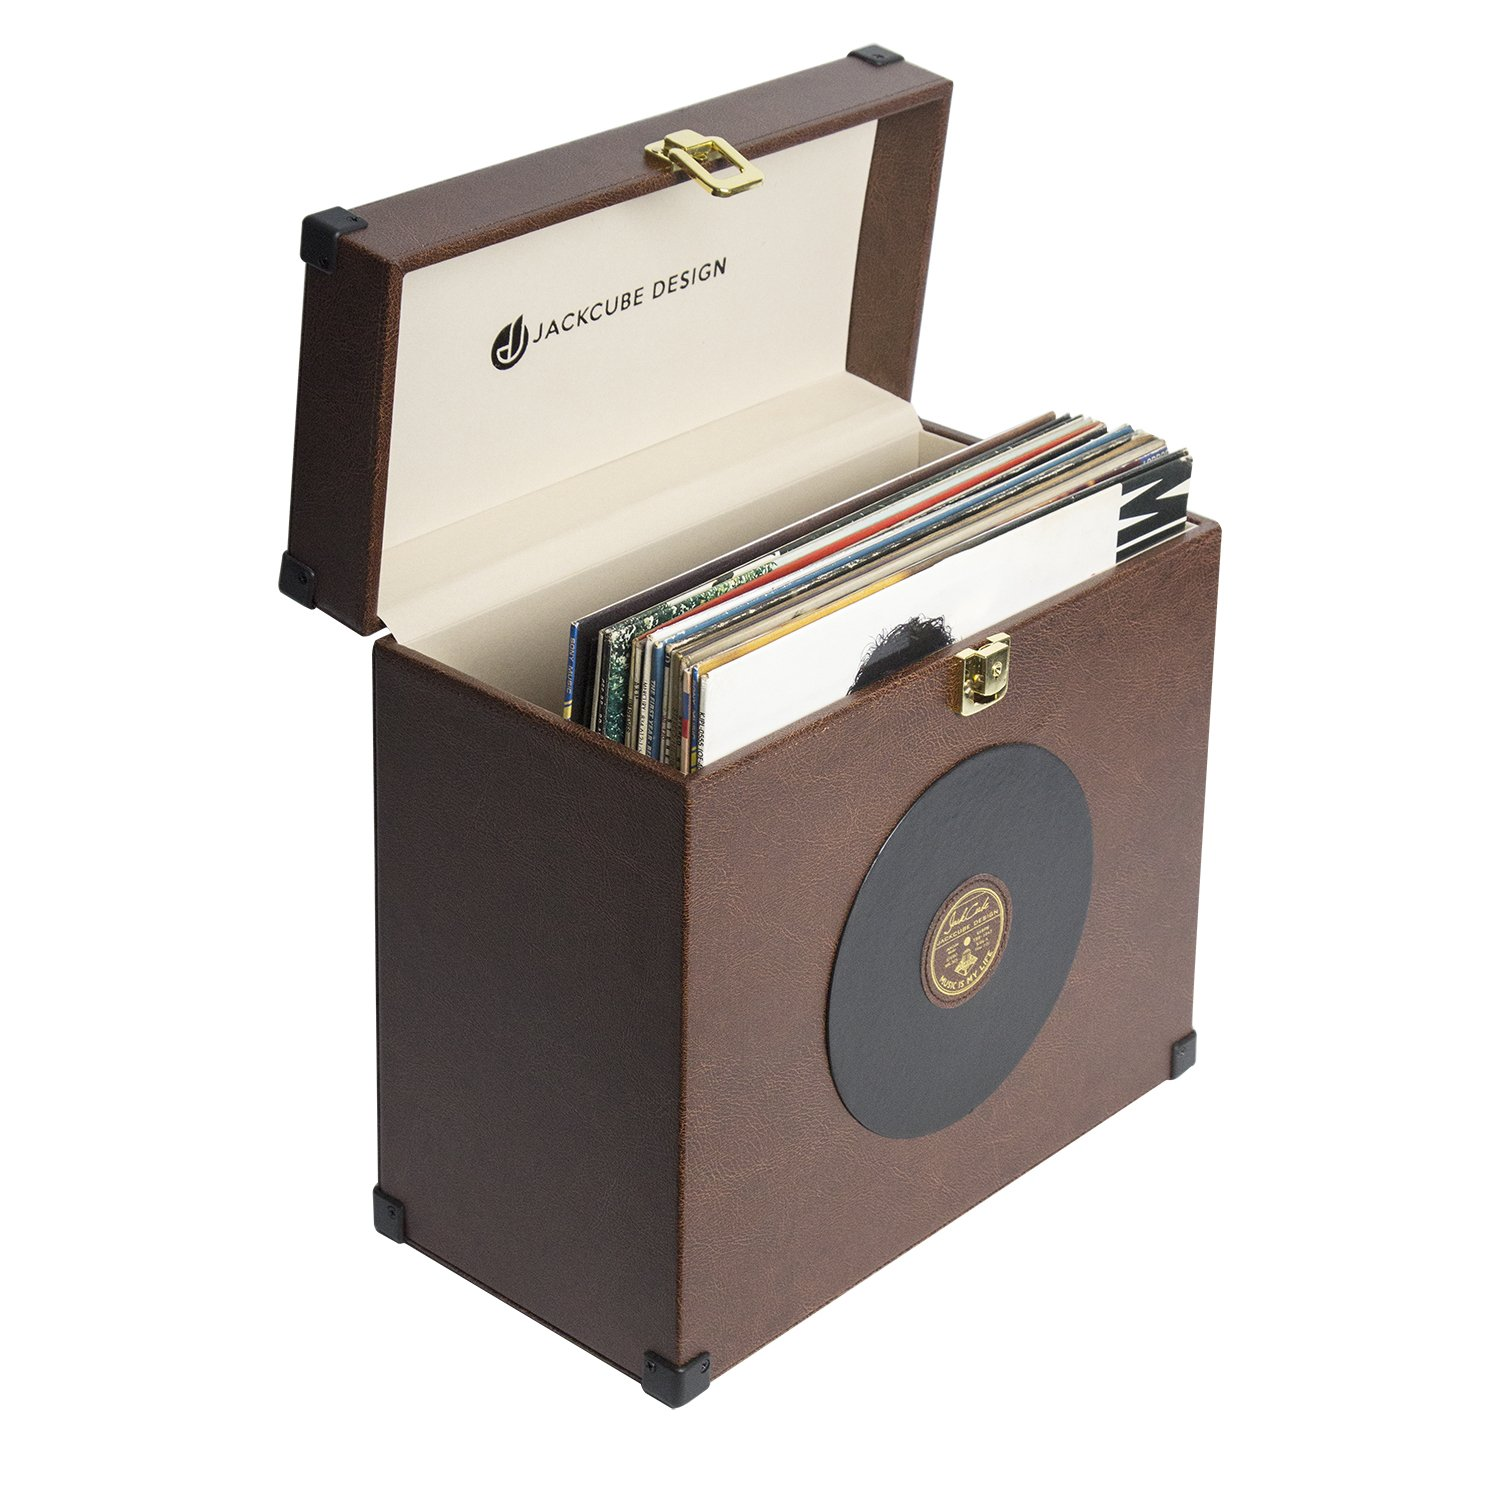 JackCubeDesign Leather LP Vinyl Record Album Storage Case Box Organizer Portable Carrier Display with Gold Metal Knob(Brown, 13.8 x 6.9 x 13.2 inches) – :MK365B